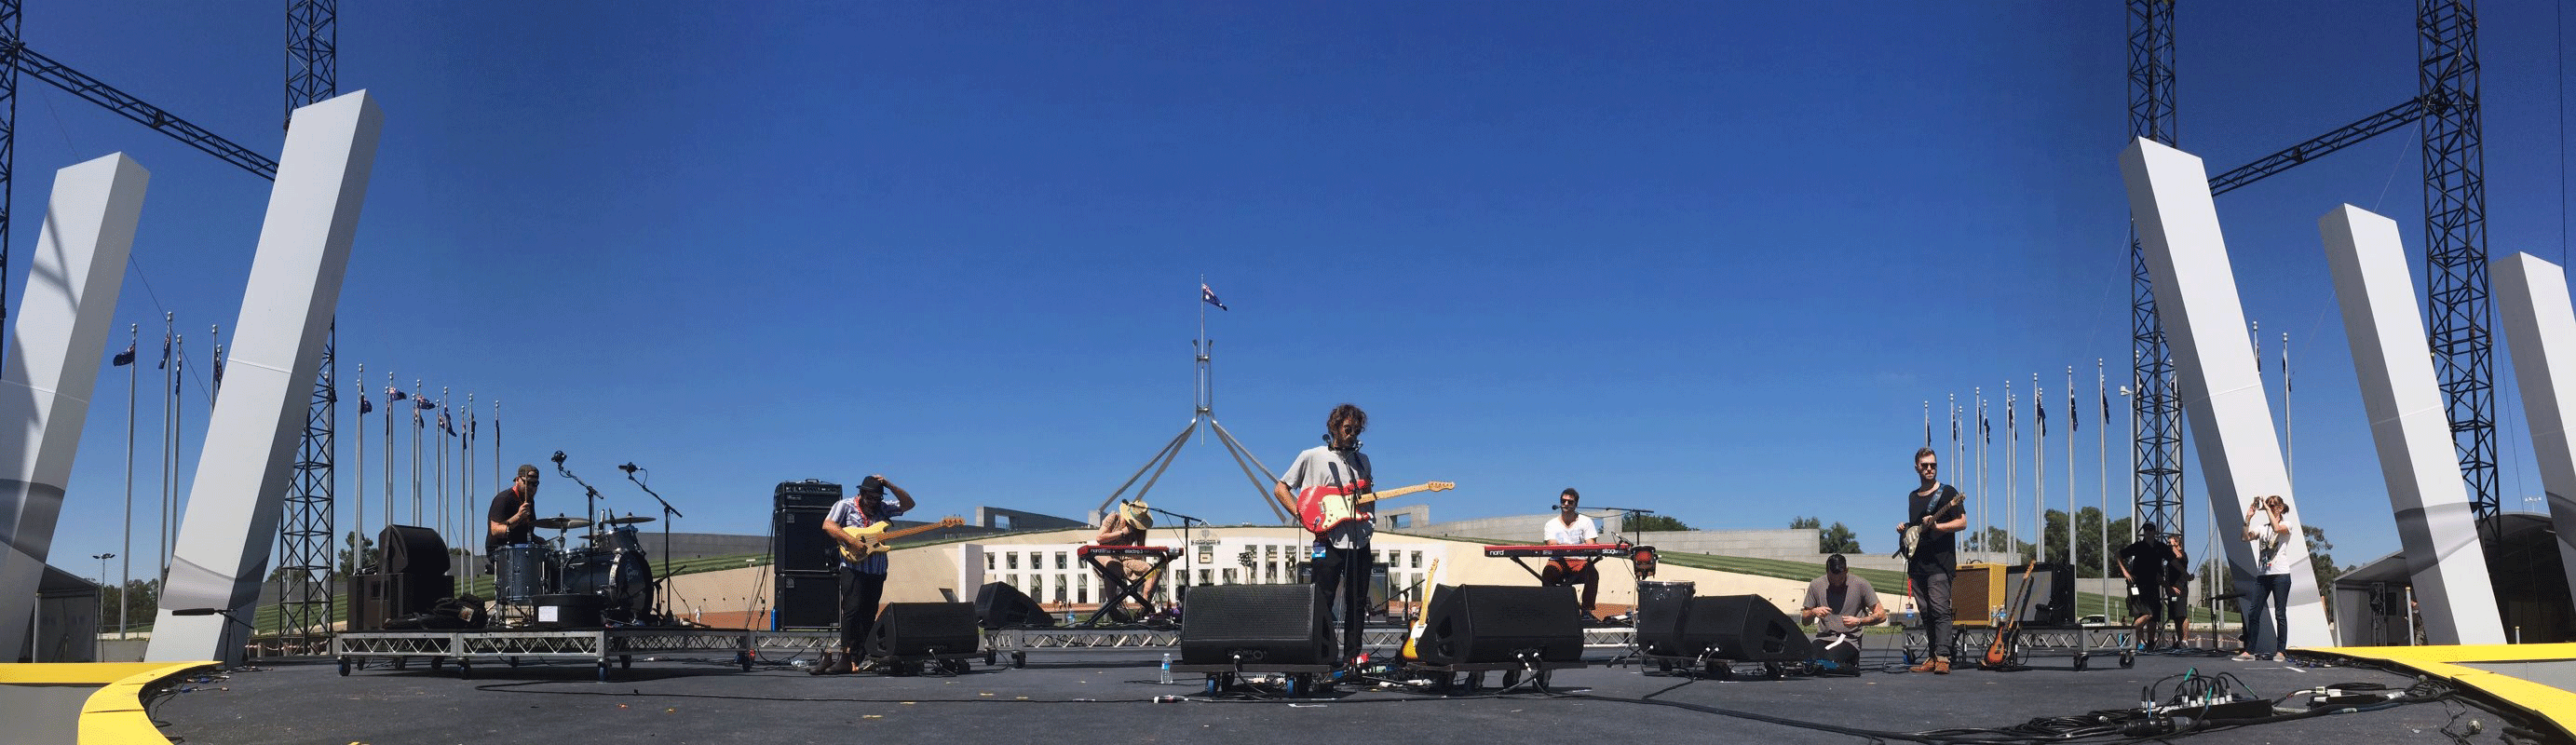 Australia Day Canberra 2014